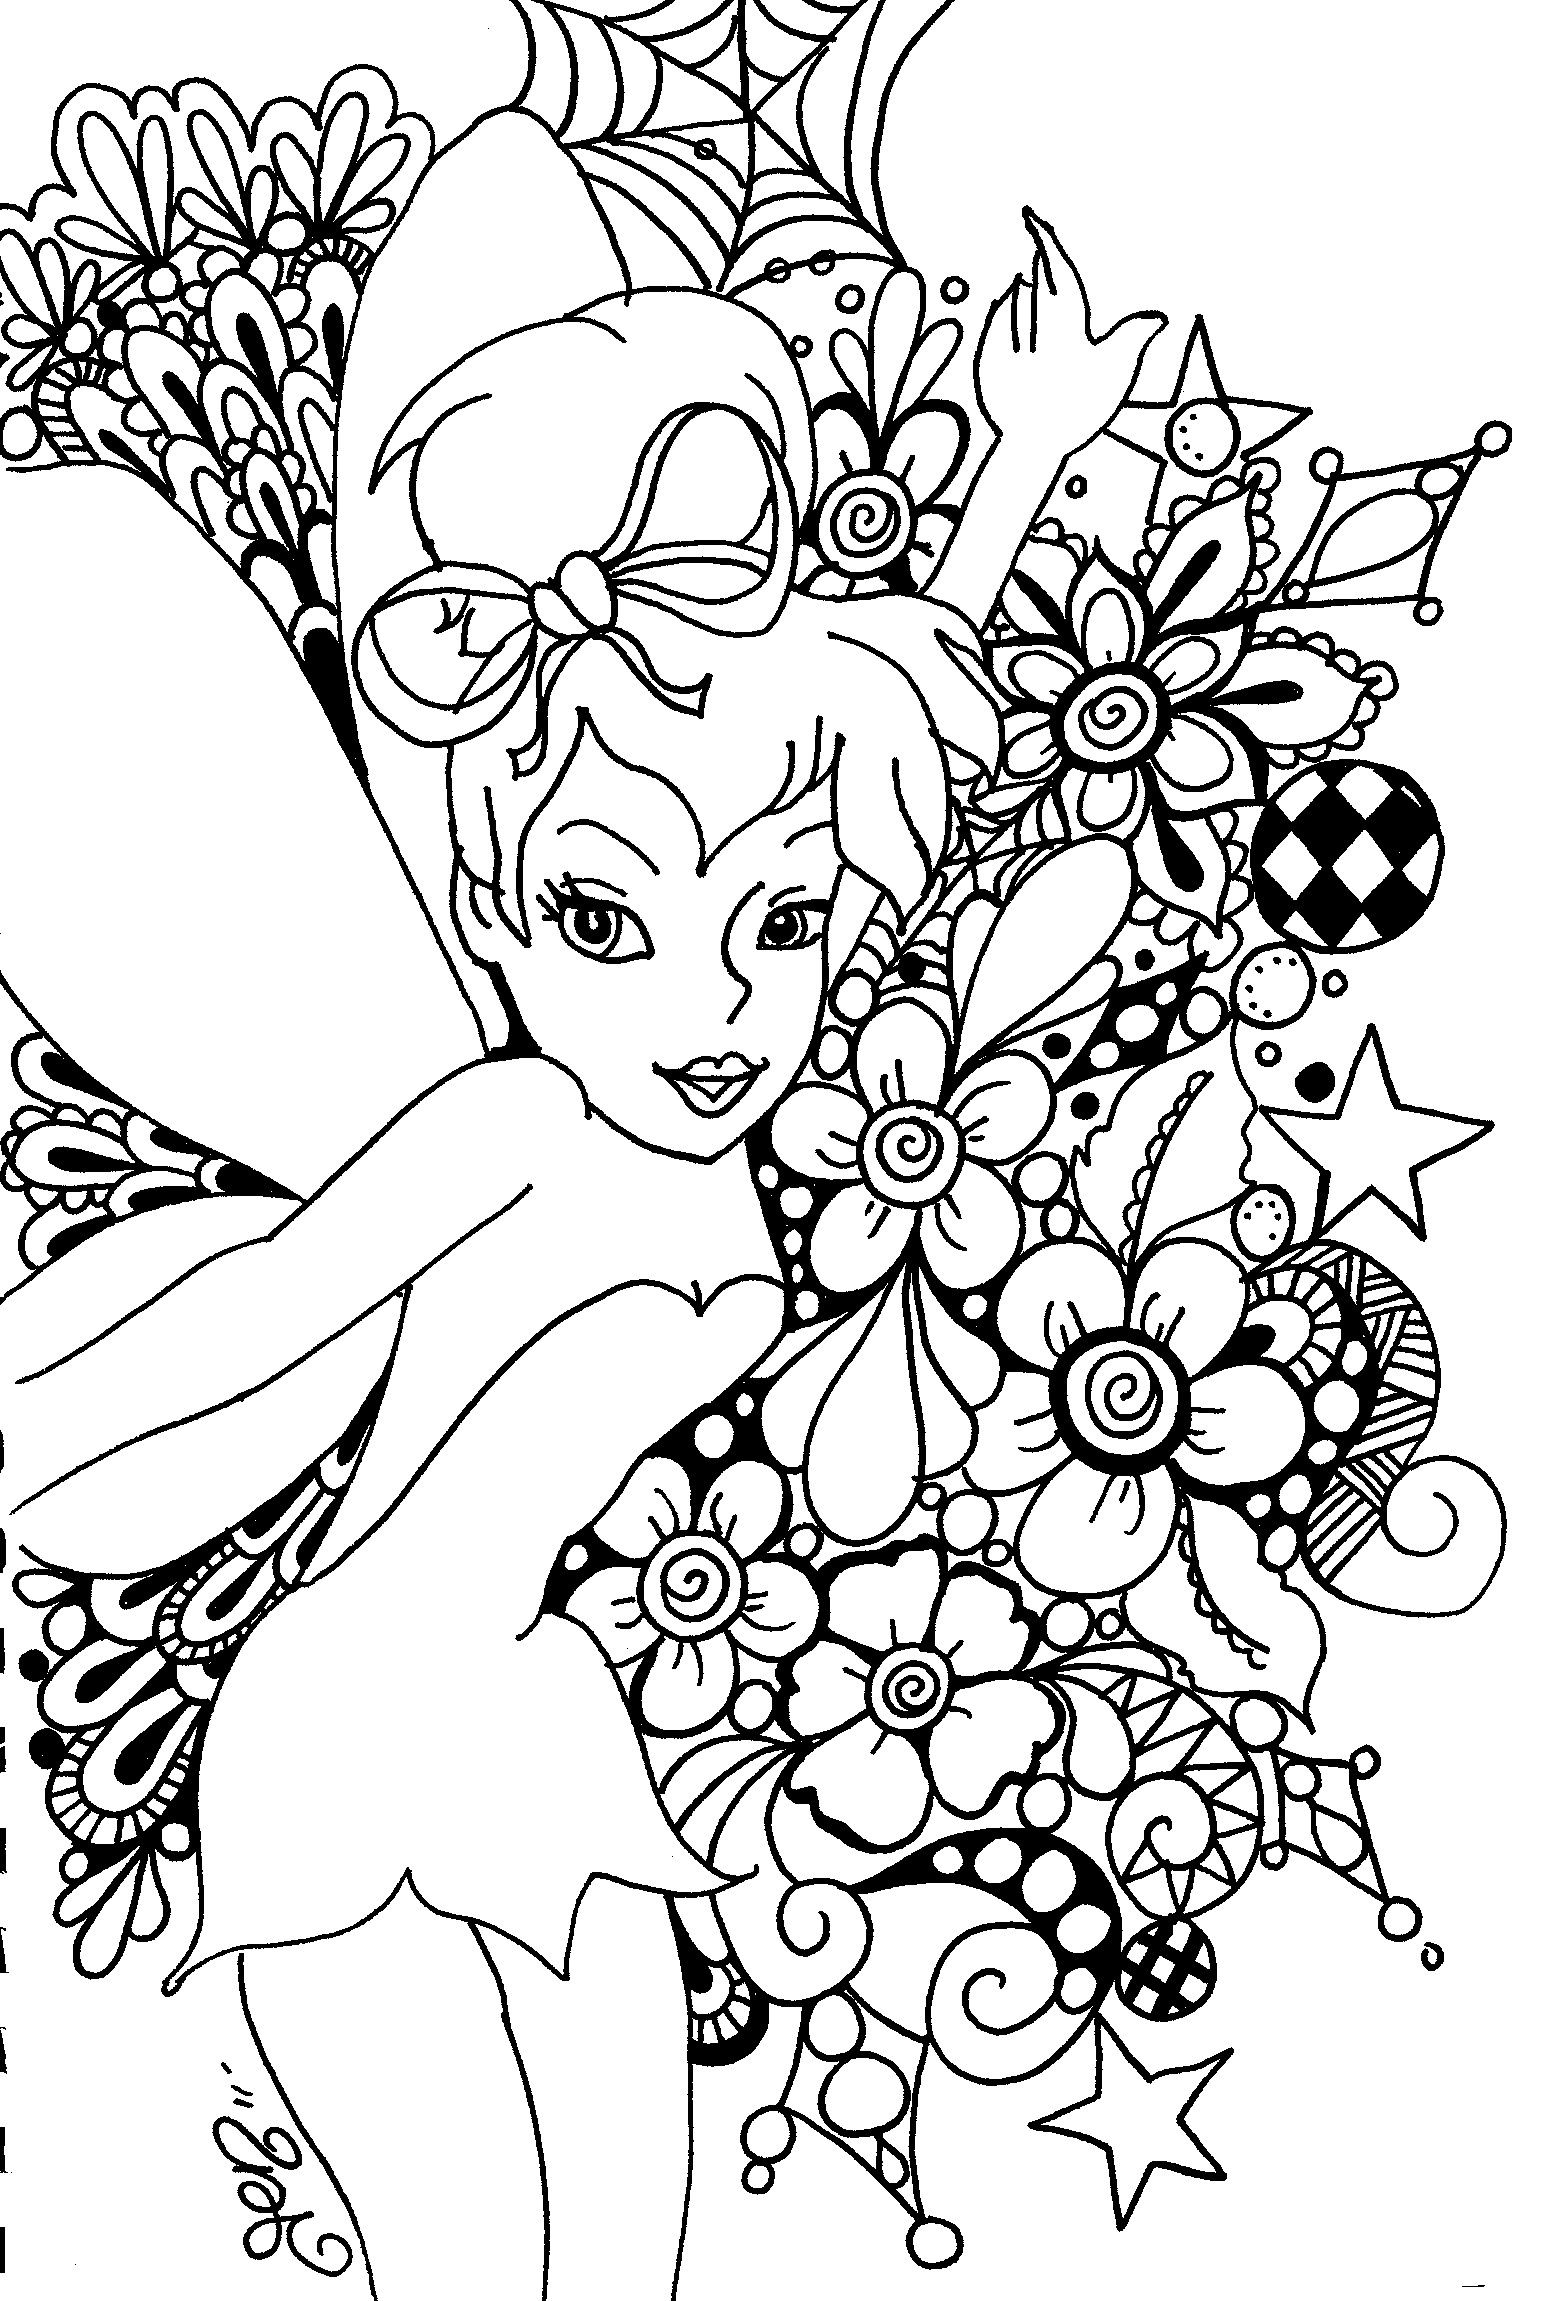 Free Printable Tinkerbell Coloring Pages For Kids Tinkerbell